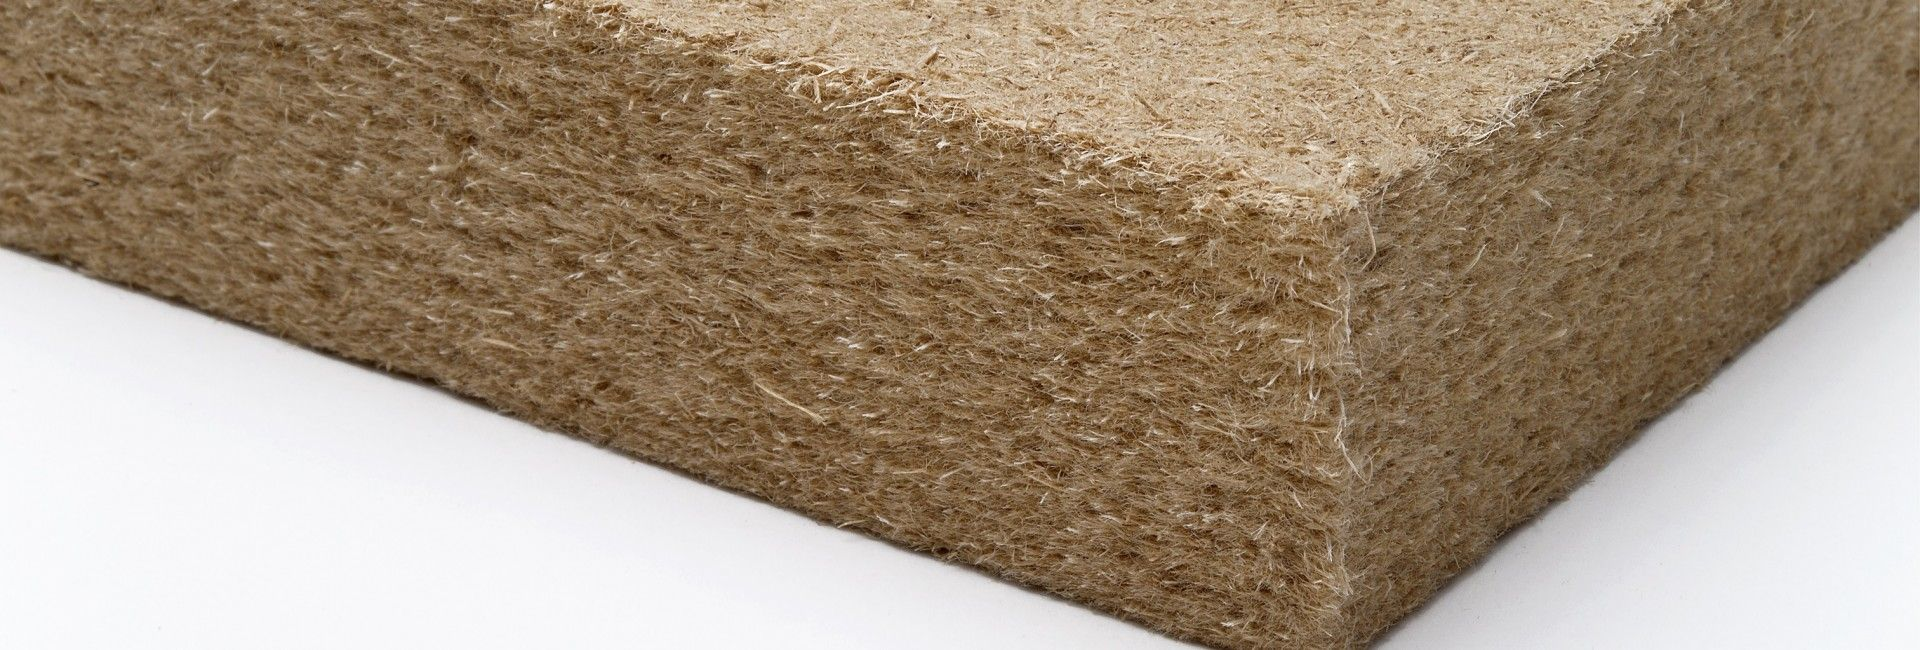 AGEPAN Natural Insulation Panel